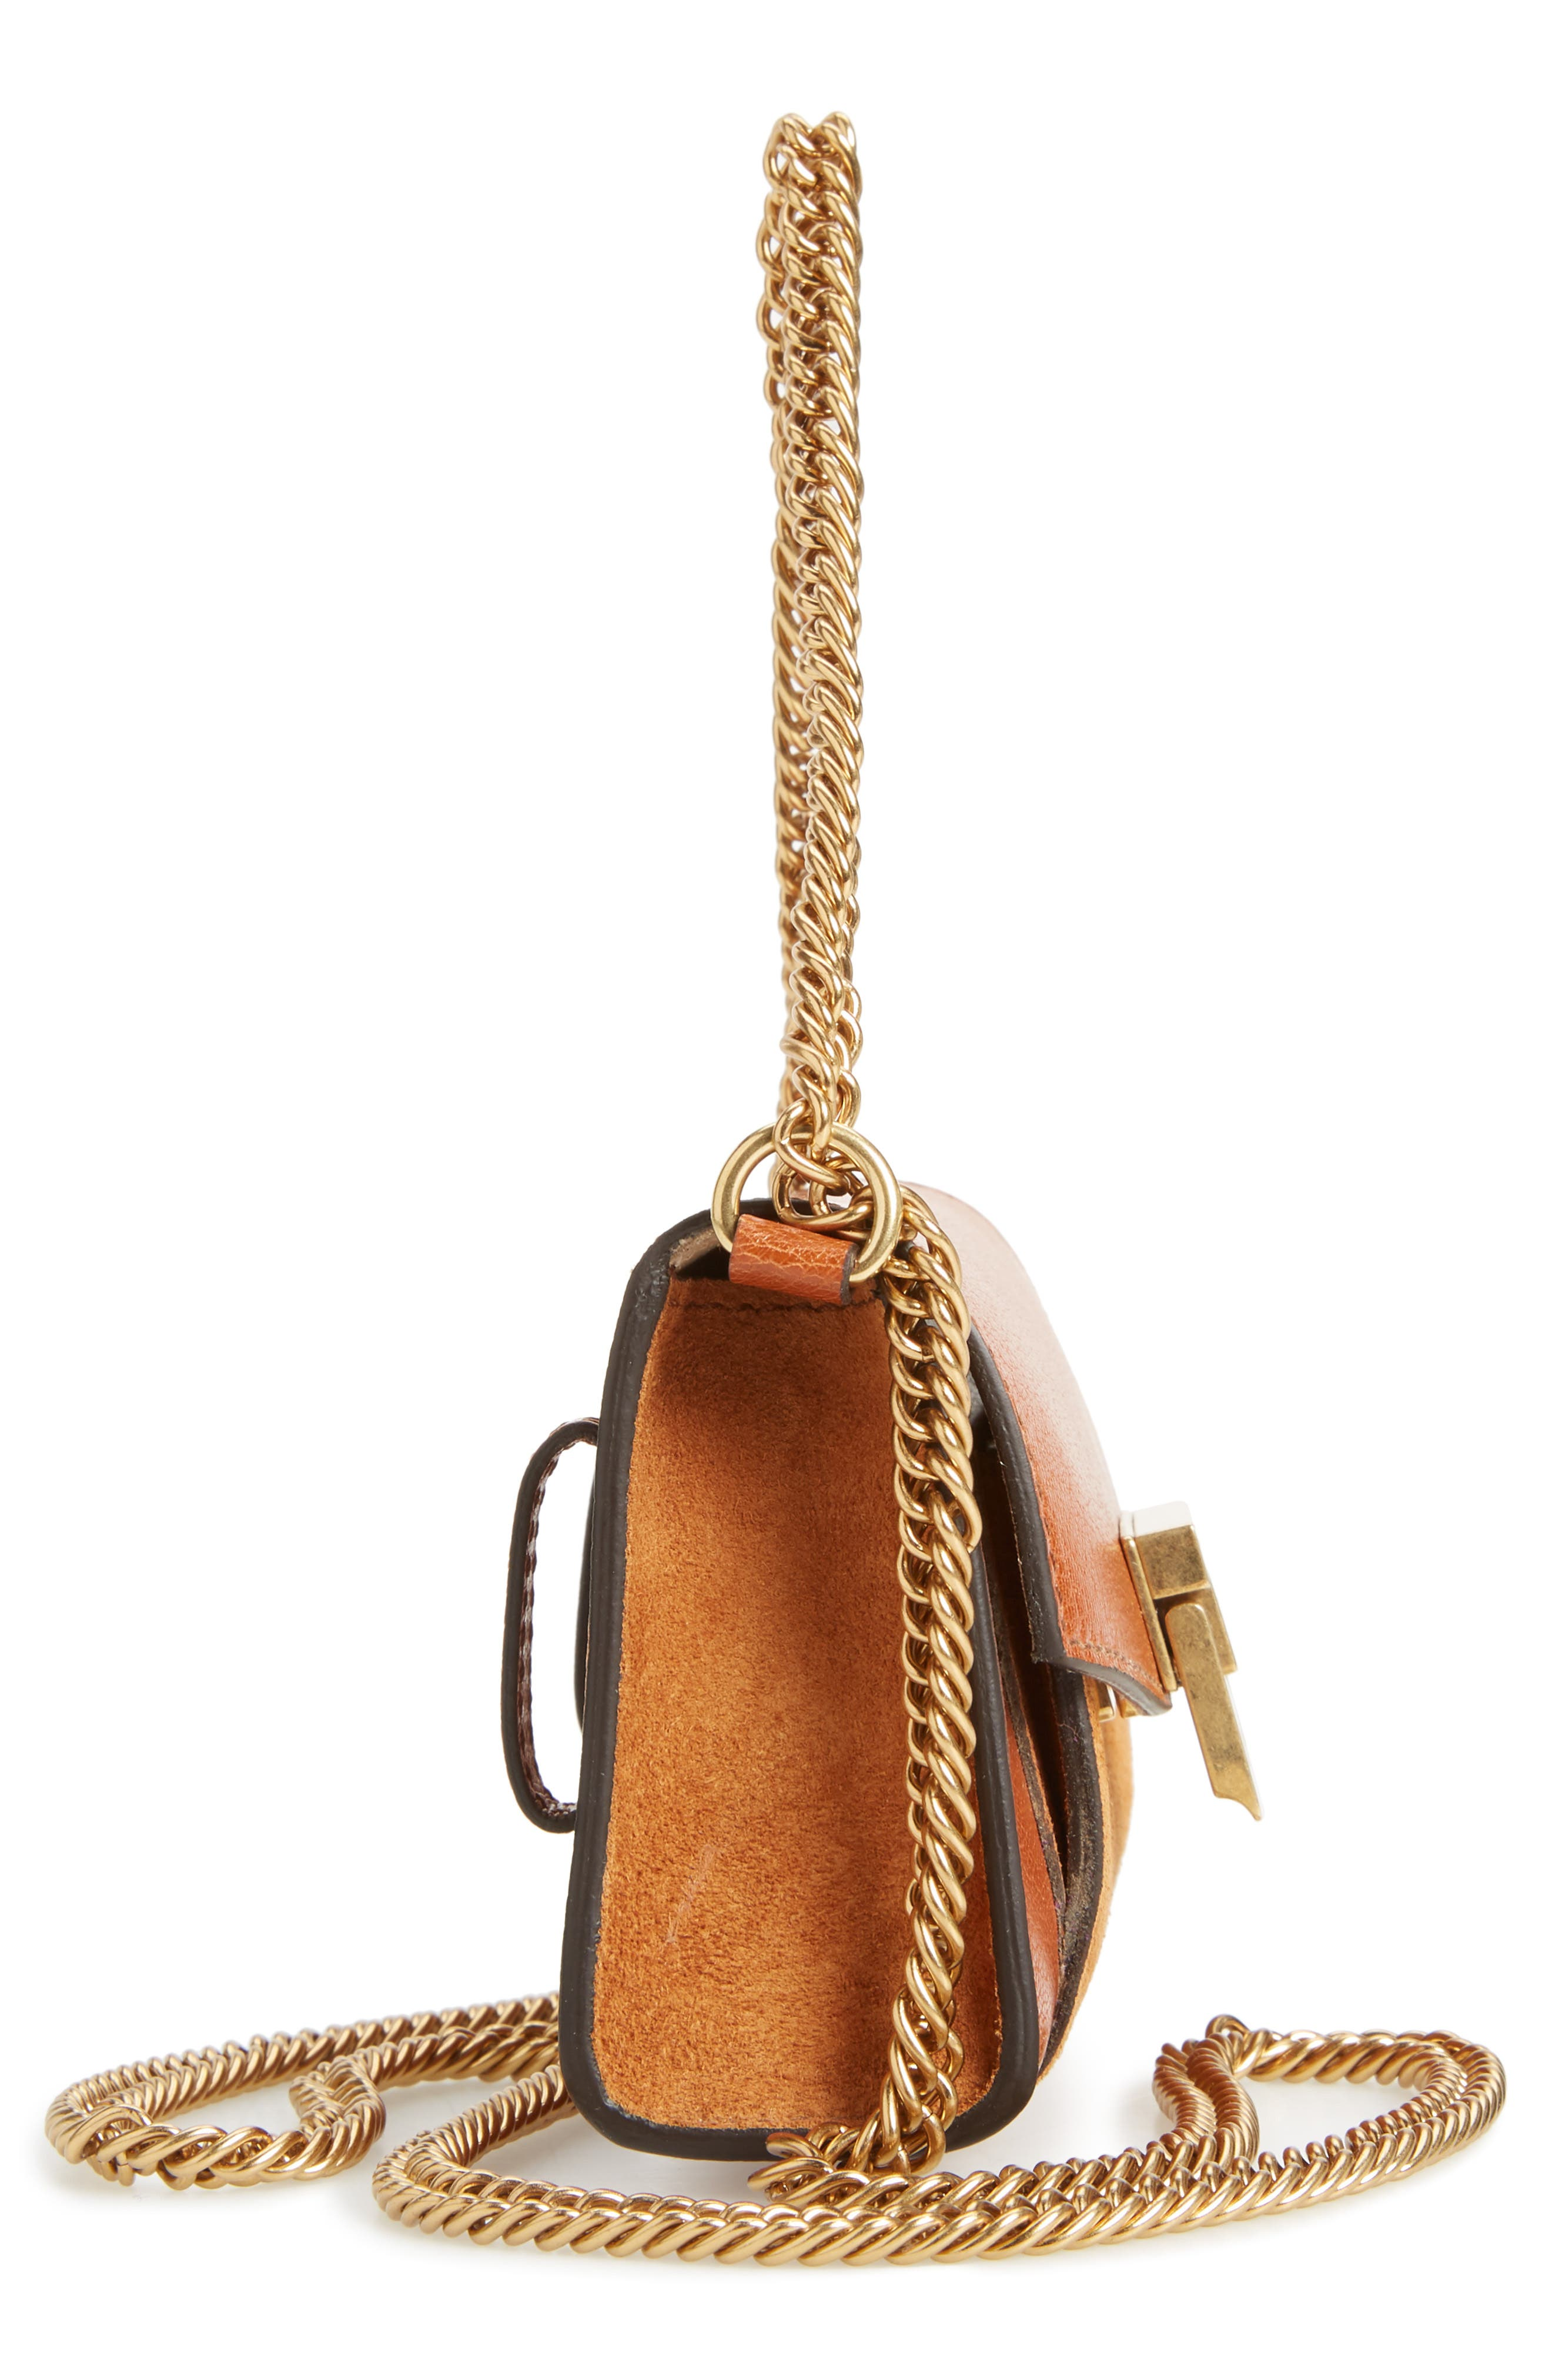 Givency Nano GV3 Leather & Suede Crossbody Bag,                             Alternate thumbnail 5, color,                             Chestnut